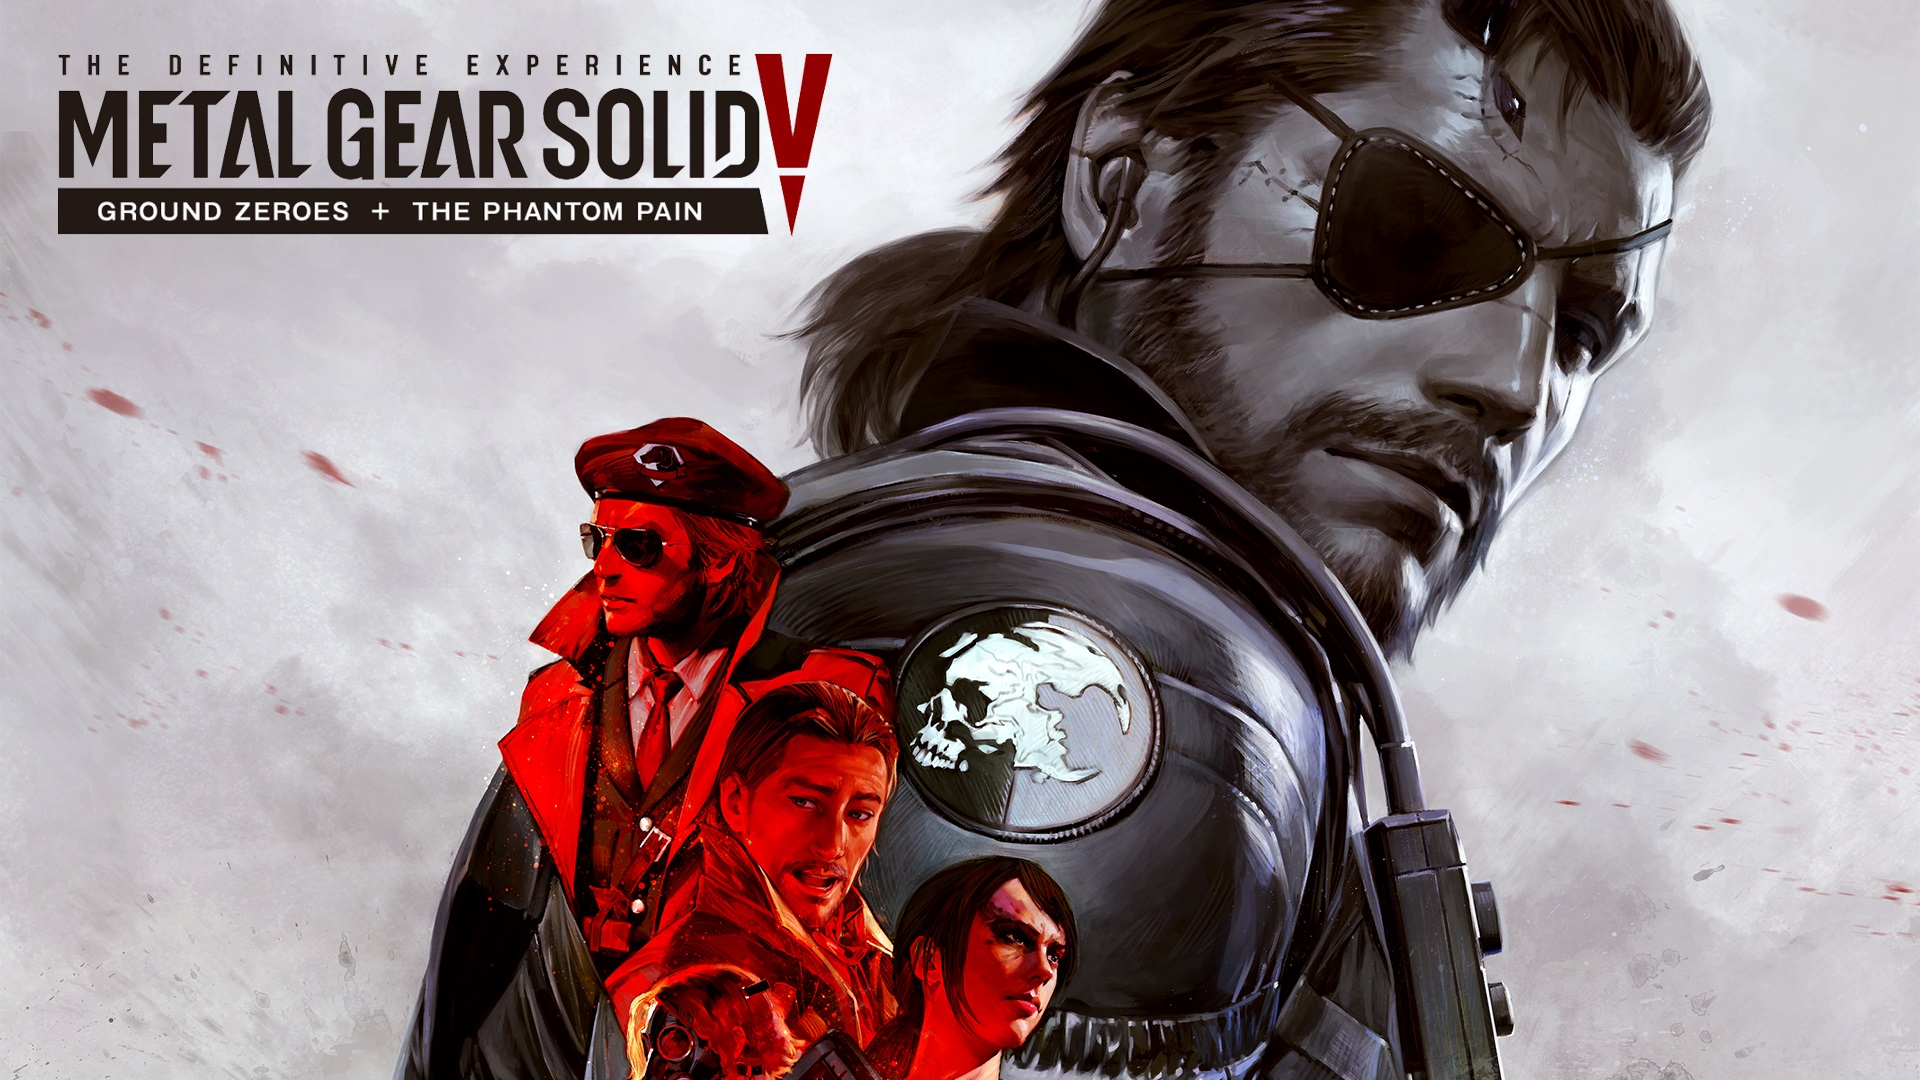 Metal Gear Solid V The Definitive Experience Konami Digital Ps4metal Phantom Pain Reg 2 Entertainment Bv